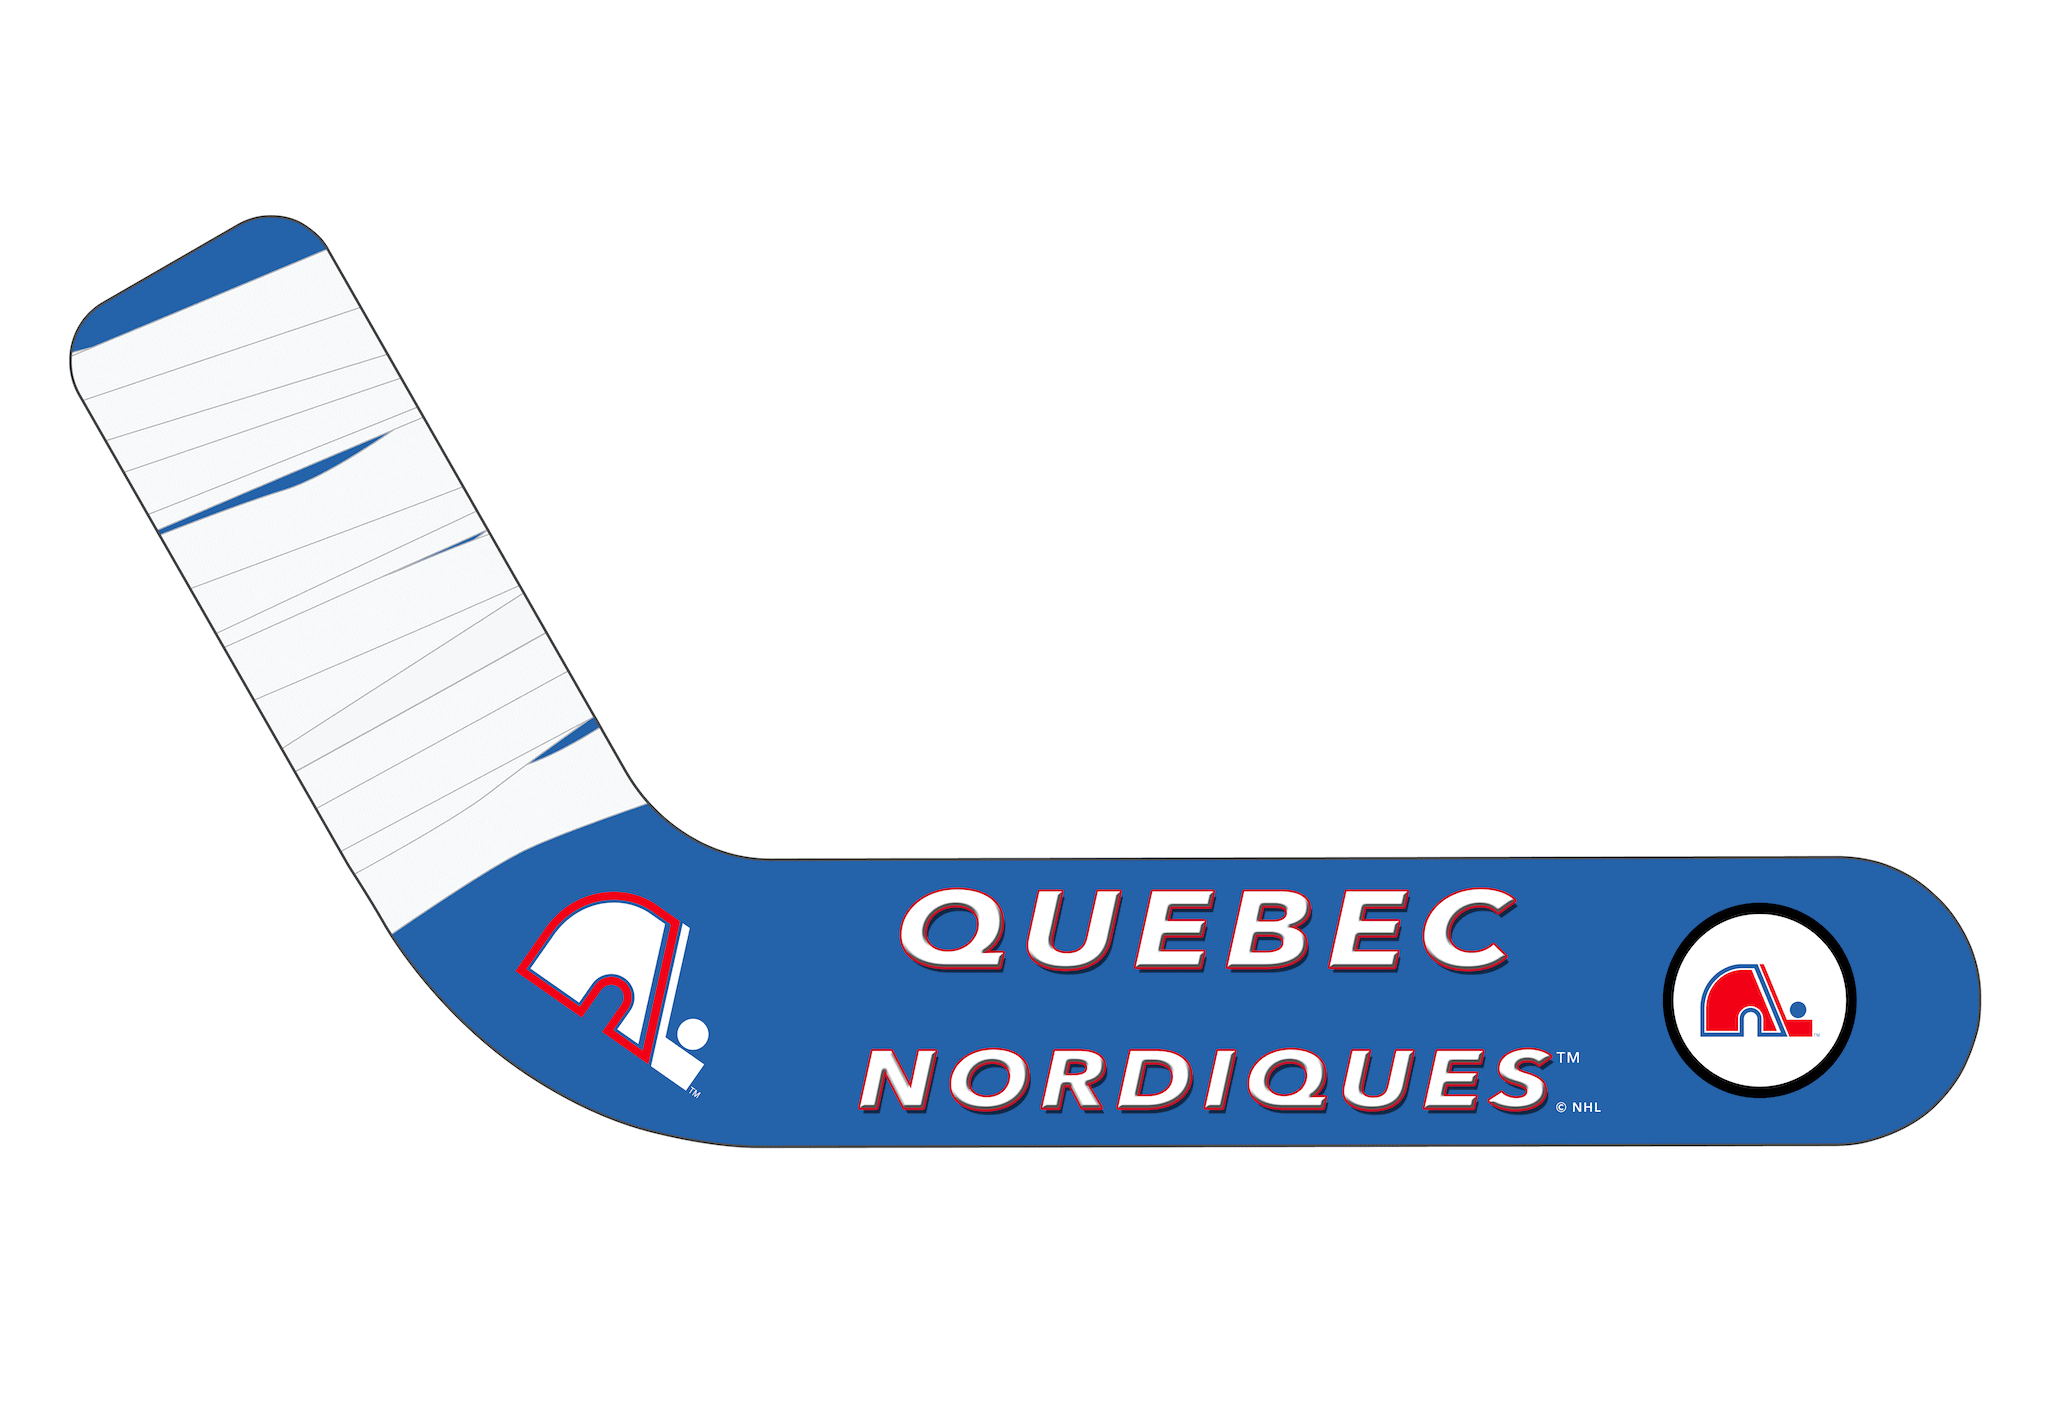 Vintage Quebec Nordiques 1979-80 - Ultimate Hockey Ceiling Fans